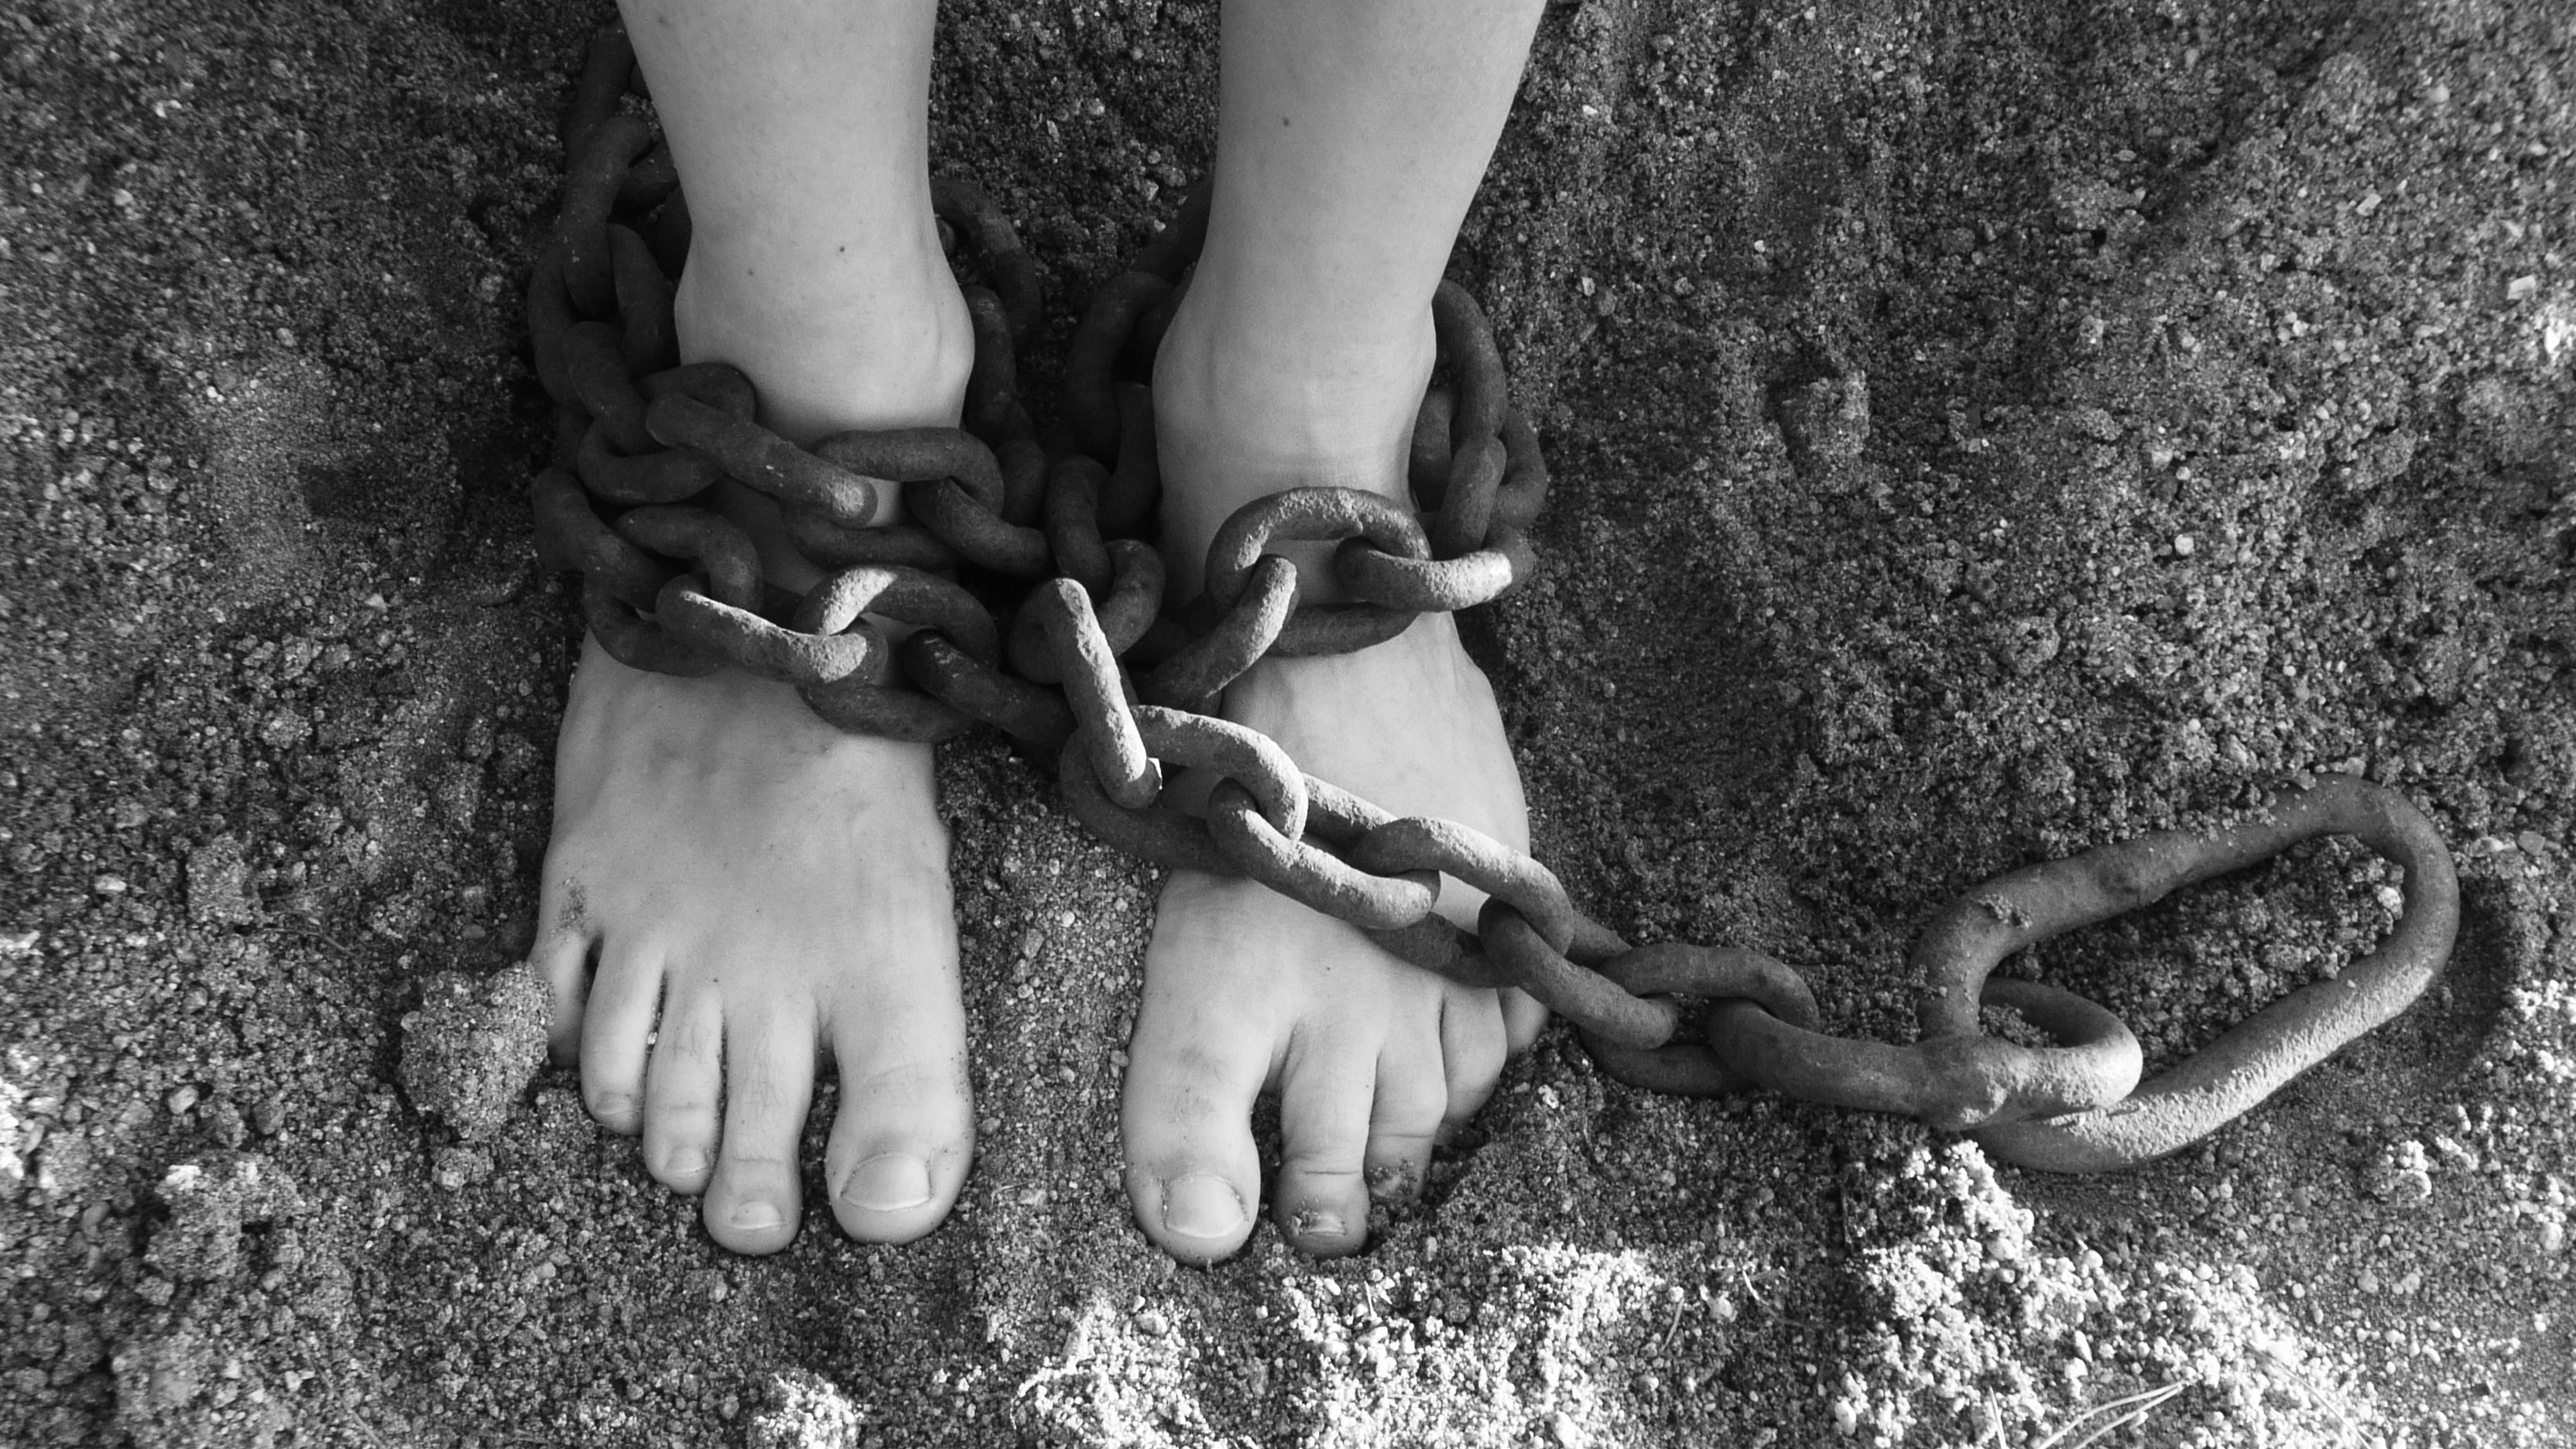 feet in slave chains